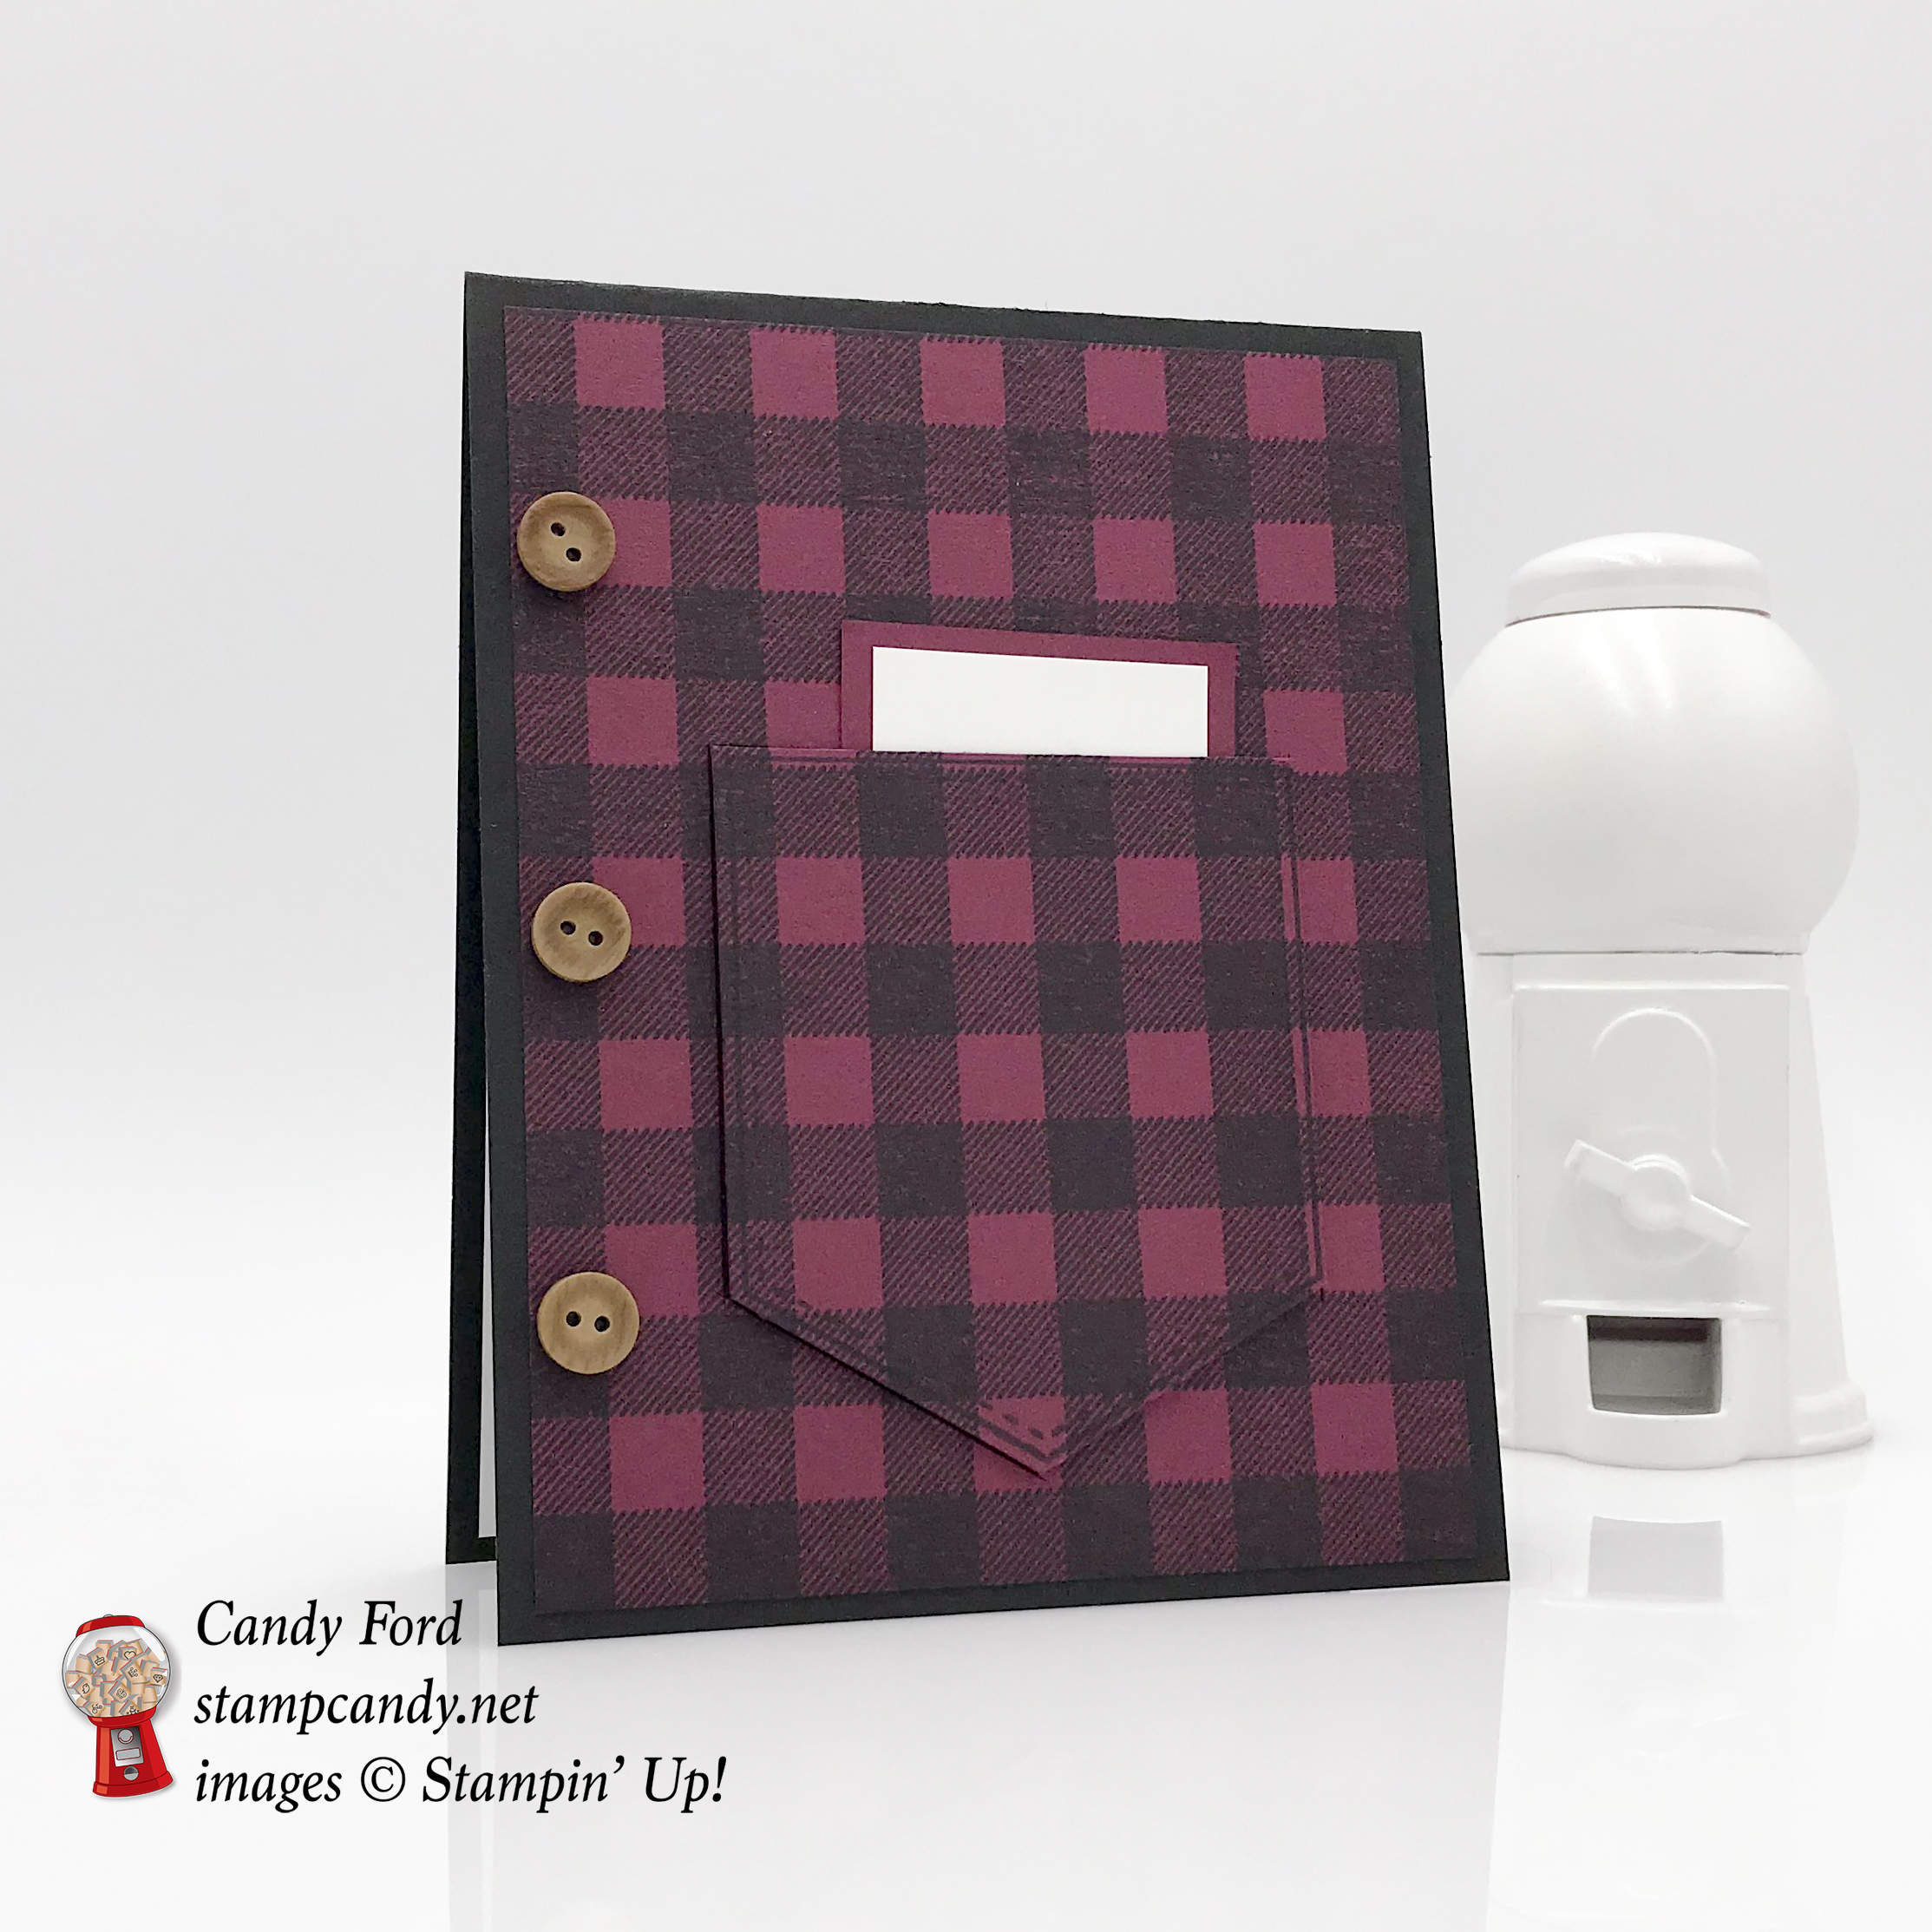 plaid shirt pocket card, Buffalo Check, Pocketful of Sunshine, Himemade Kindness stamp sets by Stampin' Up! #stampcandy